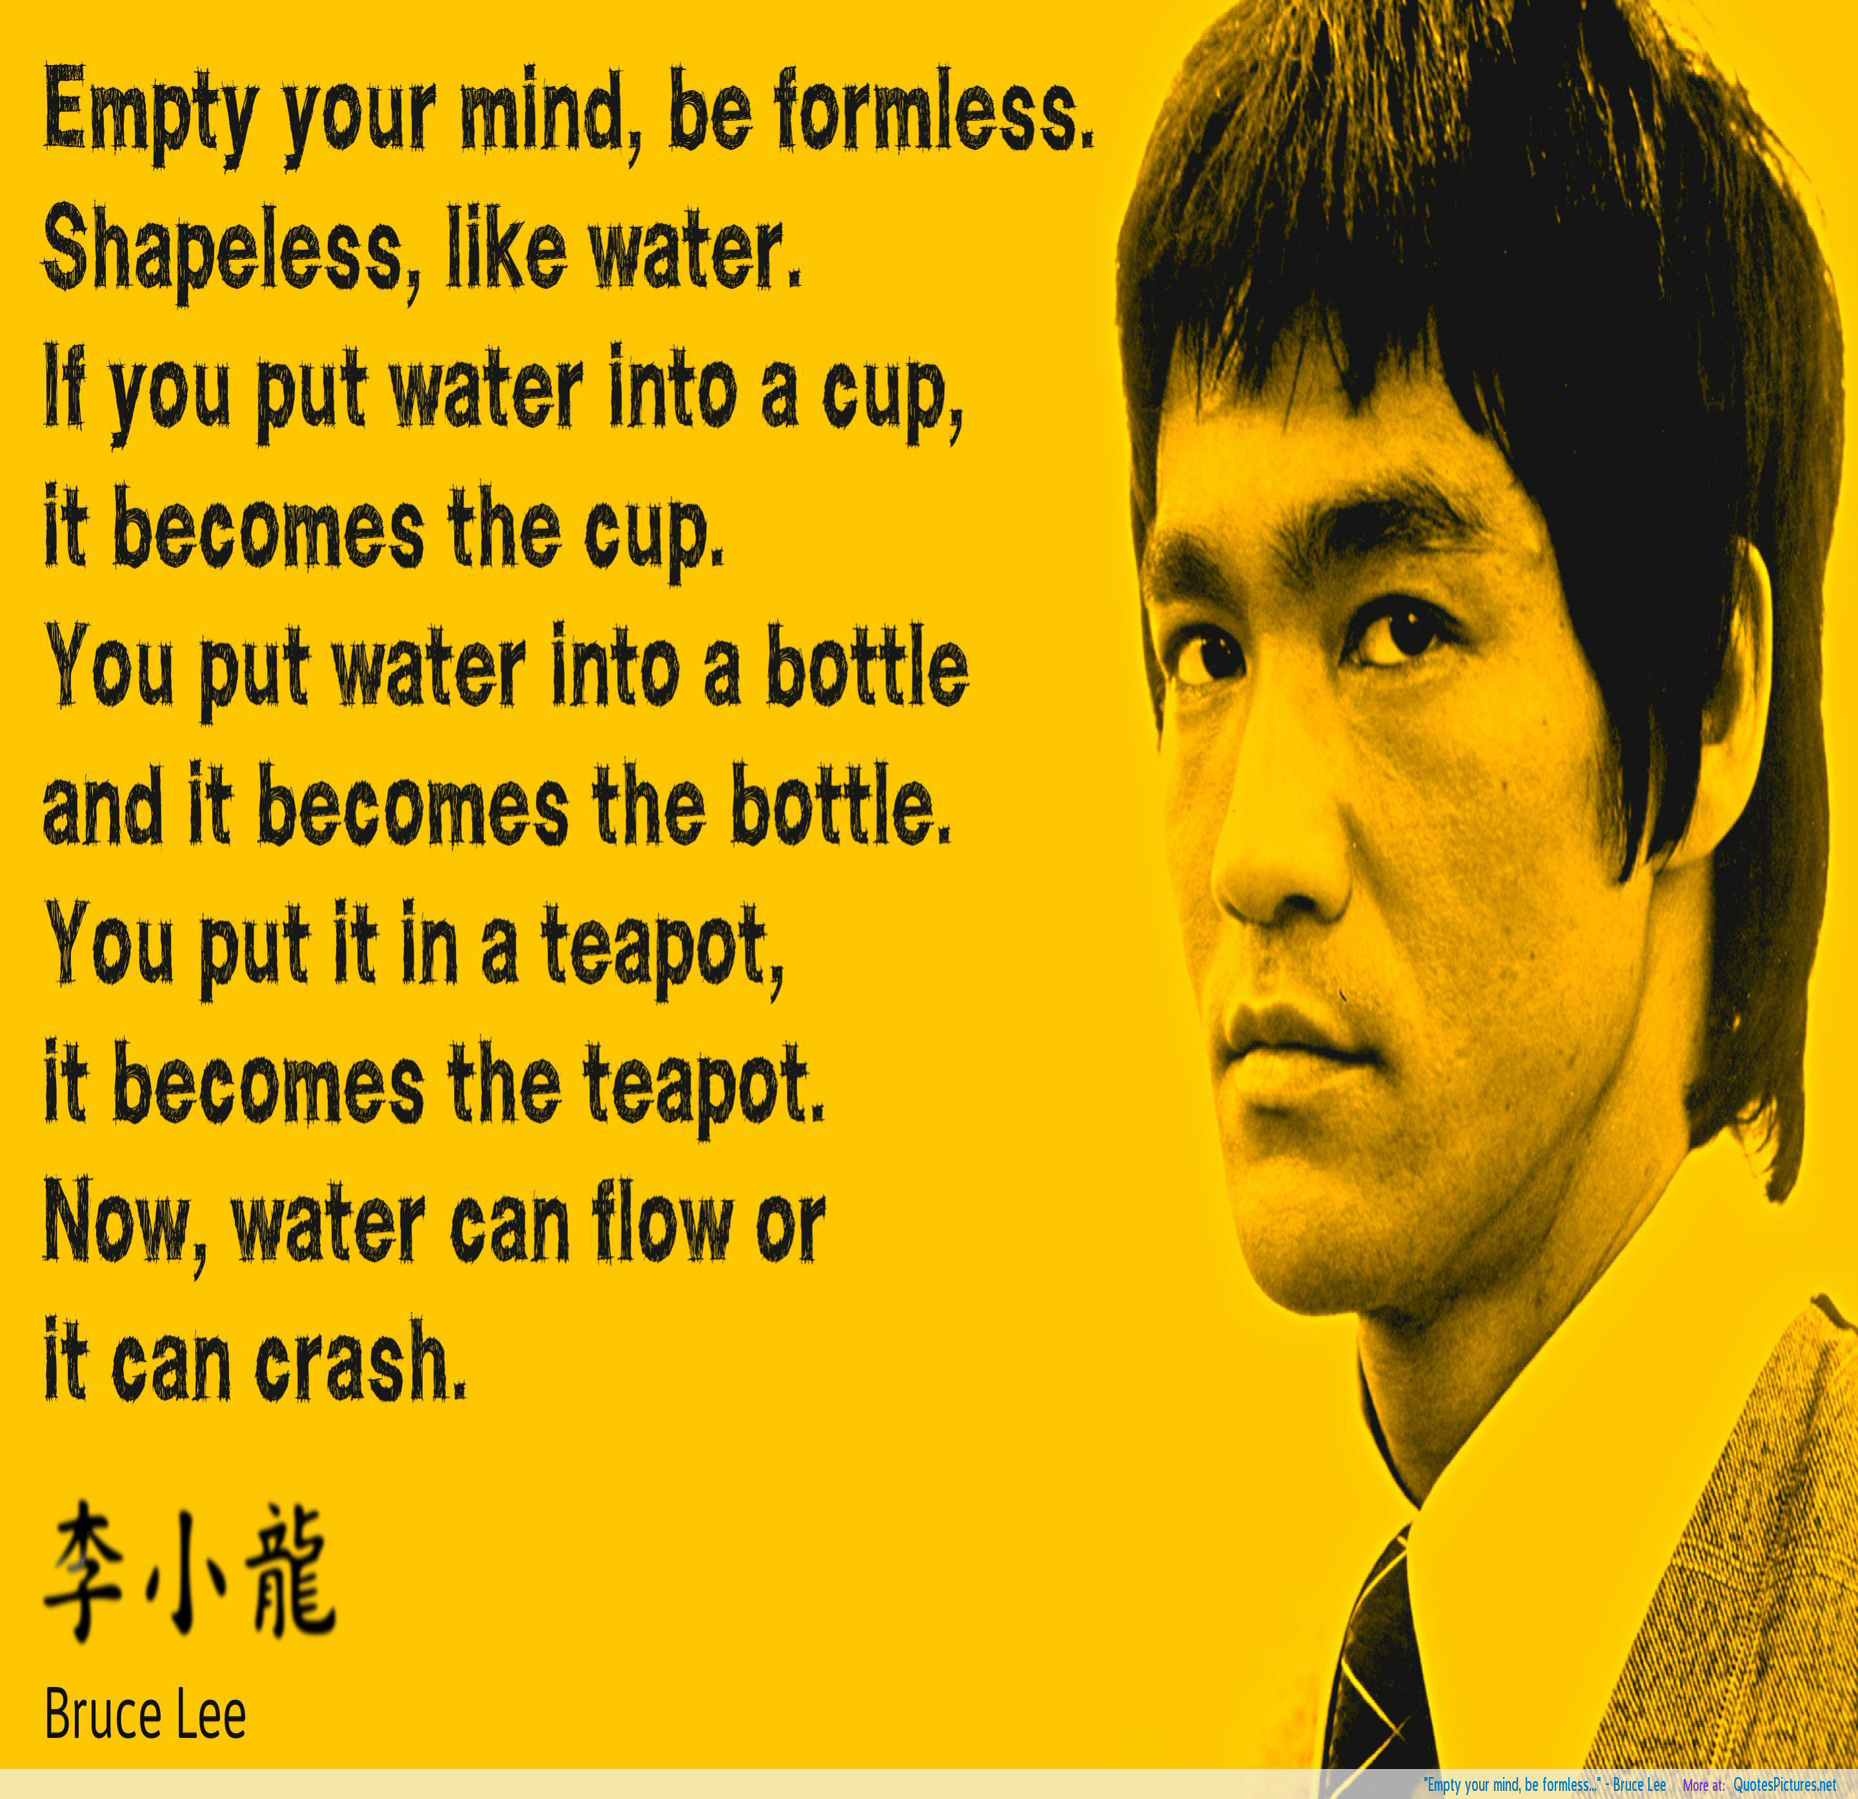 empty-your-mind-be-formless-bruce-lee